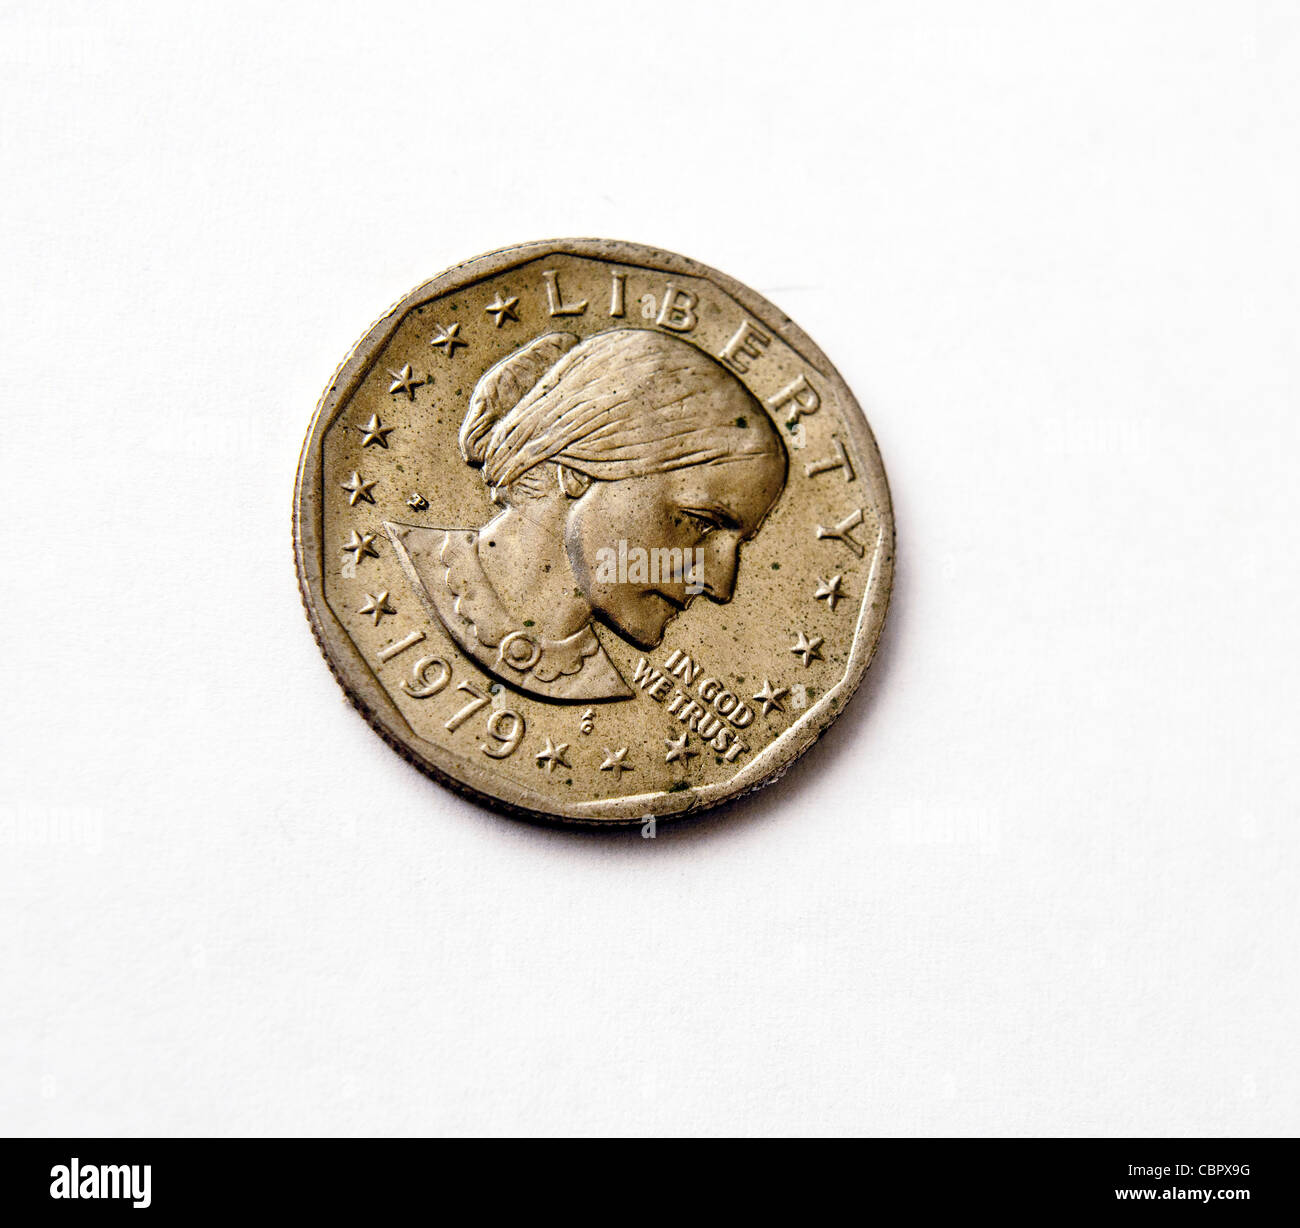 A 1979 Susan B. Anthony U.S. dollar coin - Stock Image